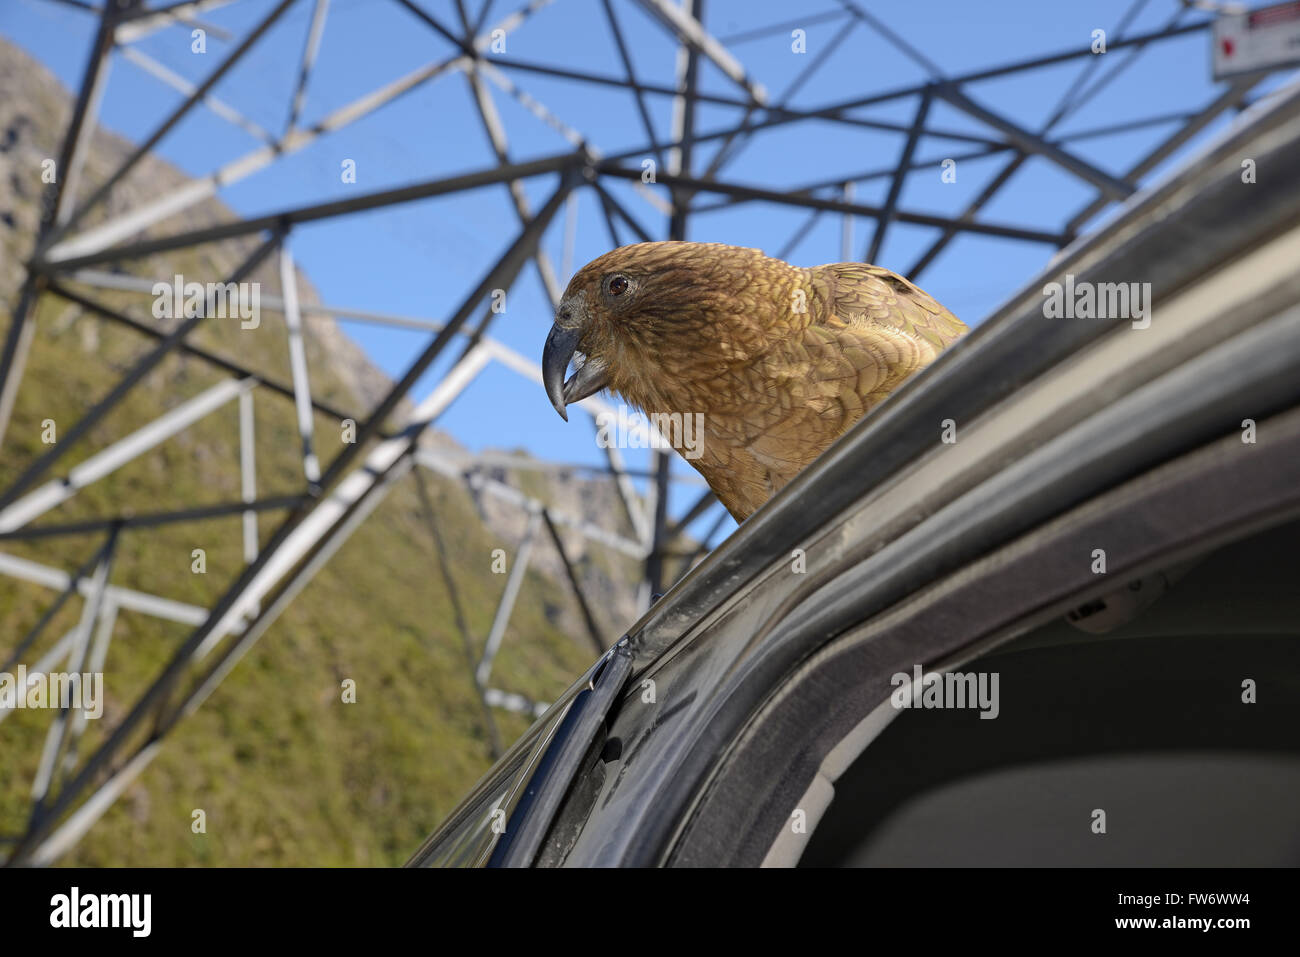 New Zealand alpine parrot, the Kea, Nestor notabilis, sitting on a car at Arthur's Pass, to the delight of tourists Stock Photo